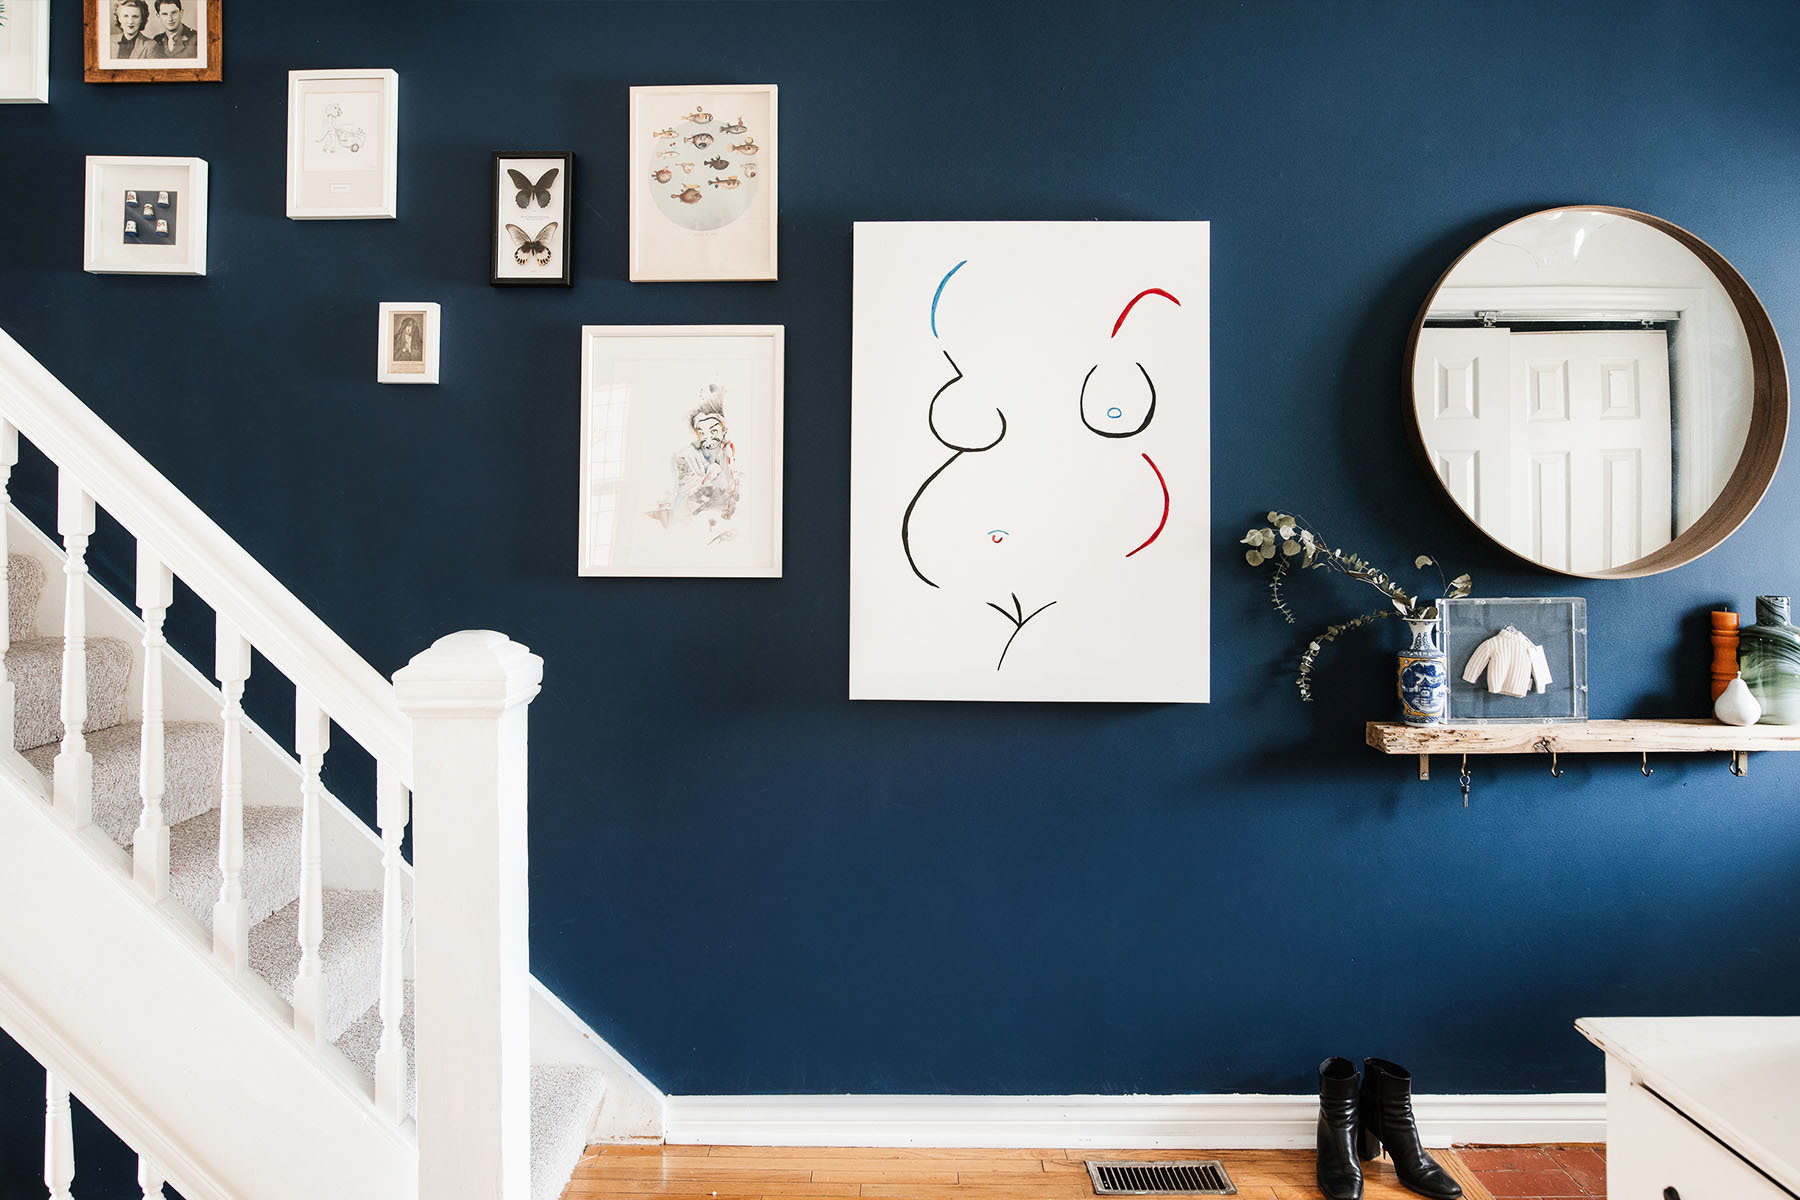 The couple's stairway boasts an eclectic look and feel, showcasing vintage family photos and sourced treasures. Behr Paint | IKEA Mirror | Custom Shelf | Ralph Damman Torso Artwork | Ryan Dineen Fish Print | State Goods Butterflies Print | Lee Kurn Lion Print | Ryan Dineen Watercolor | Umbria Cashmere Council Plaque.